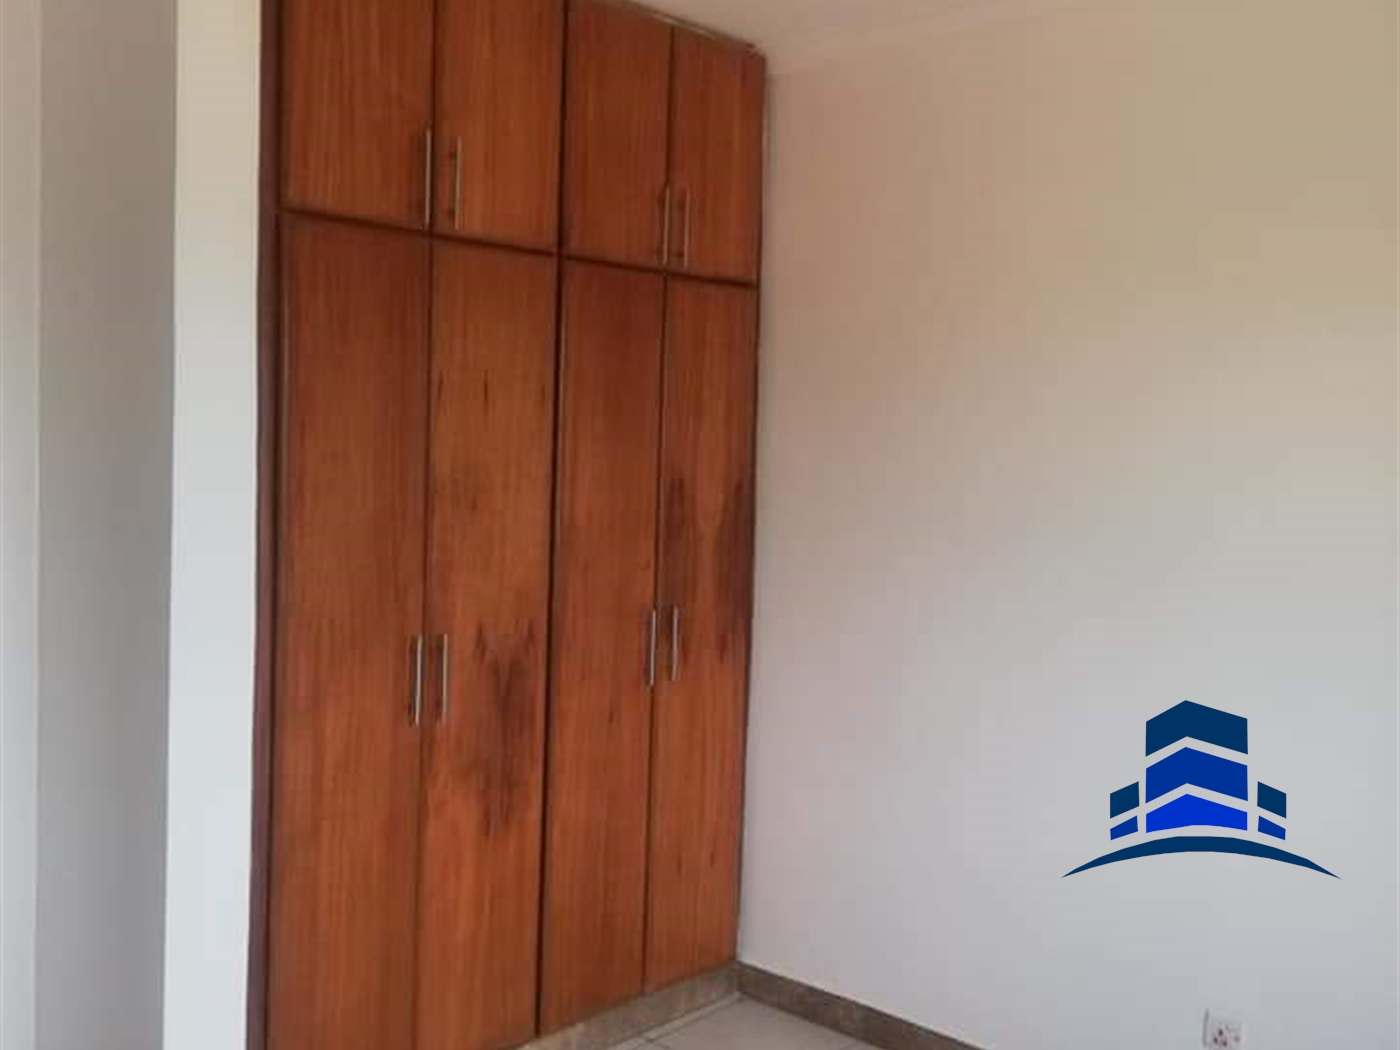 Apartment for rent in Ntinda Kampala